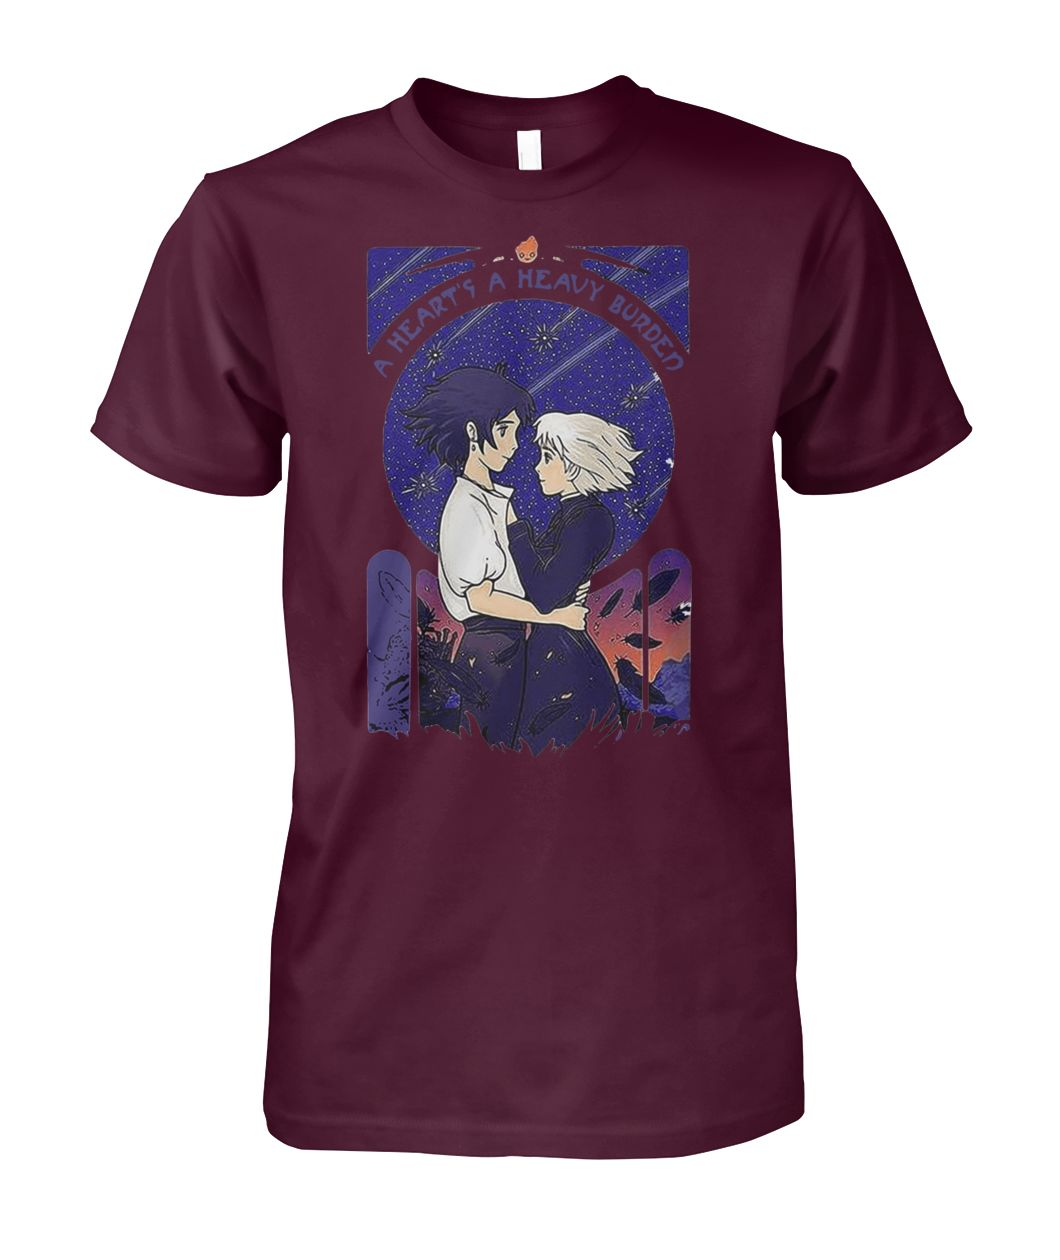 [Hot version] Howl and Sophie a heart's heavy burden shirt